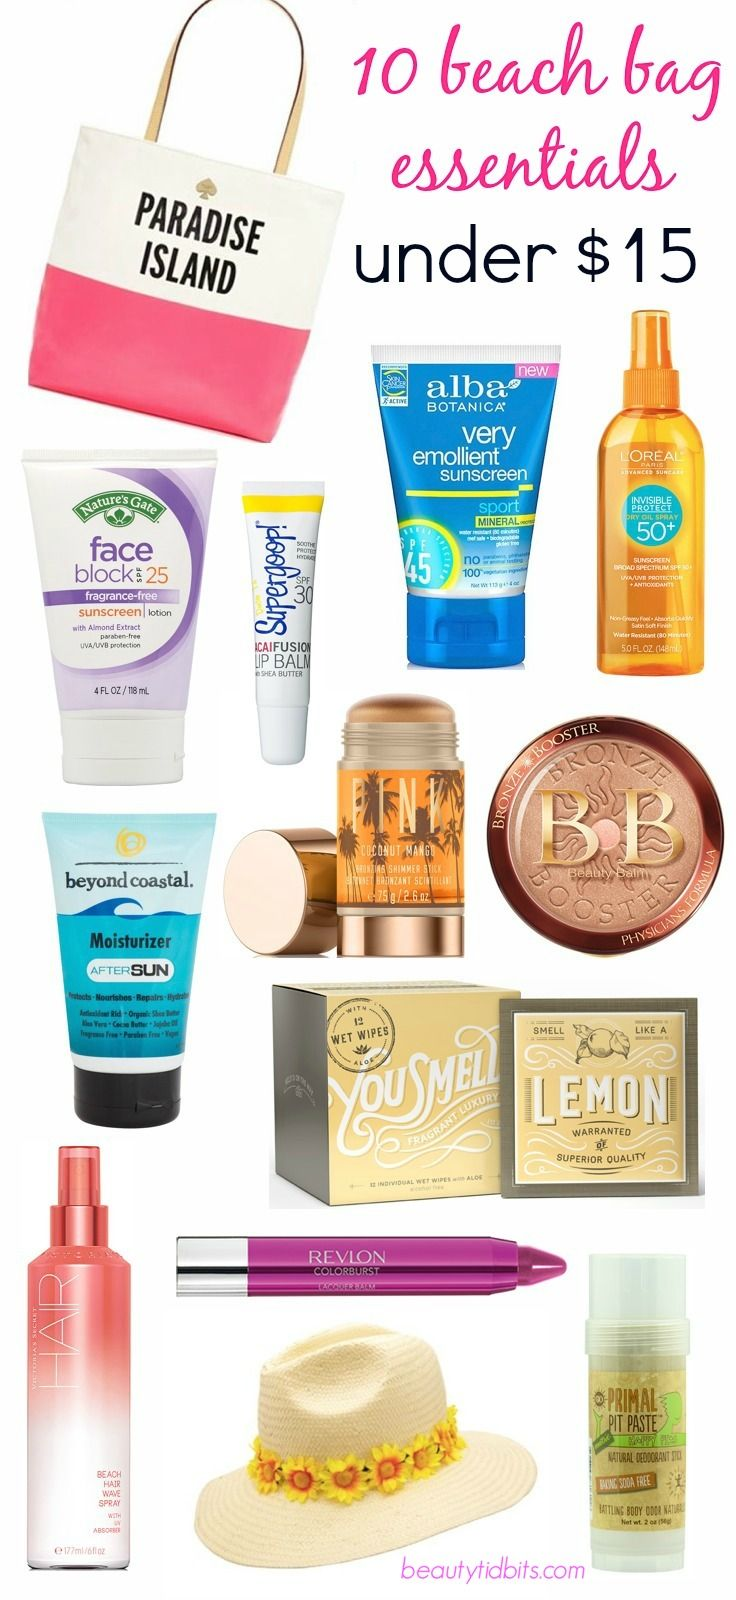 Are you ready for some beach fun? Beach bag essentials under $15 via @beautytidbits